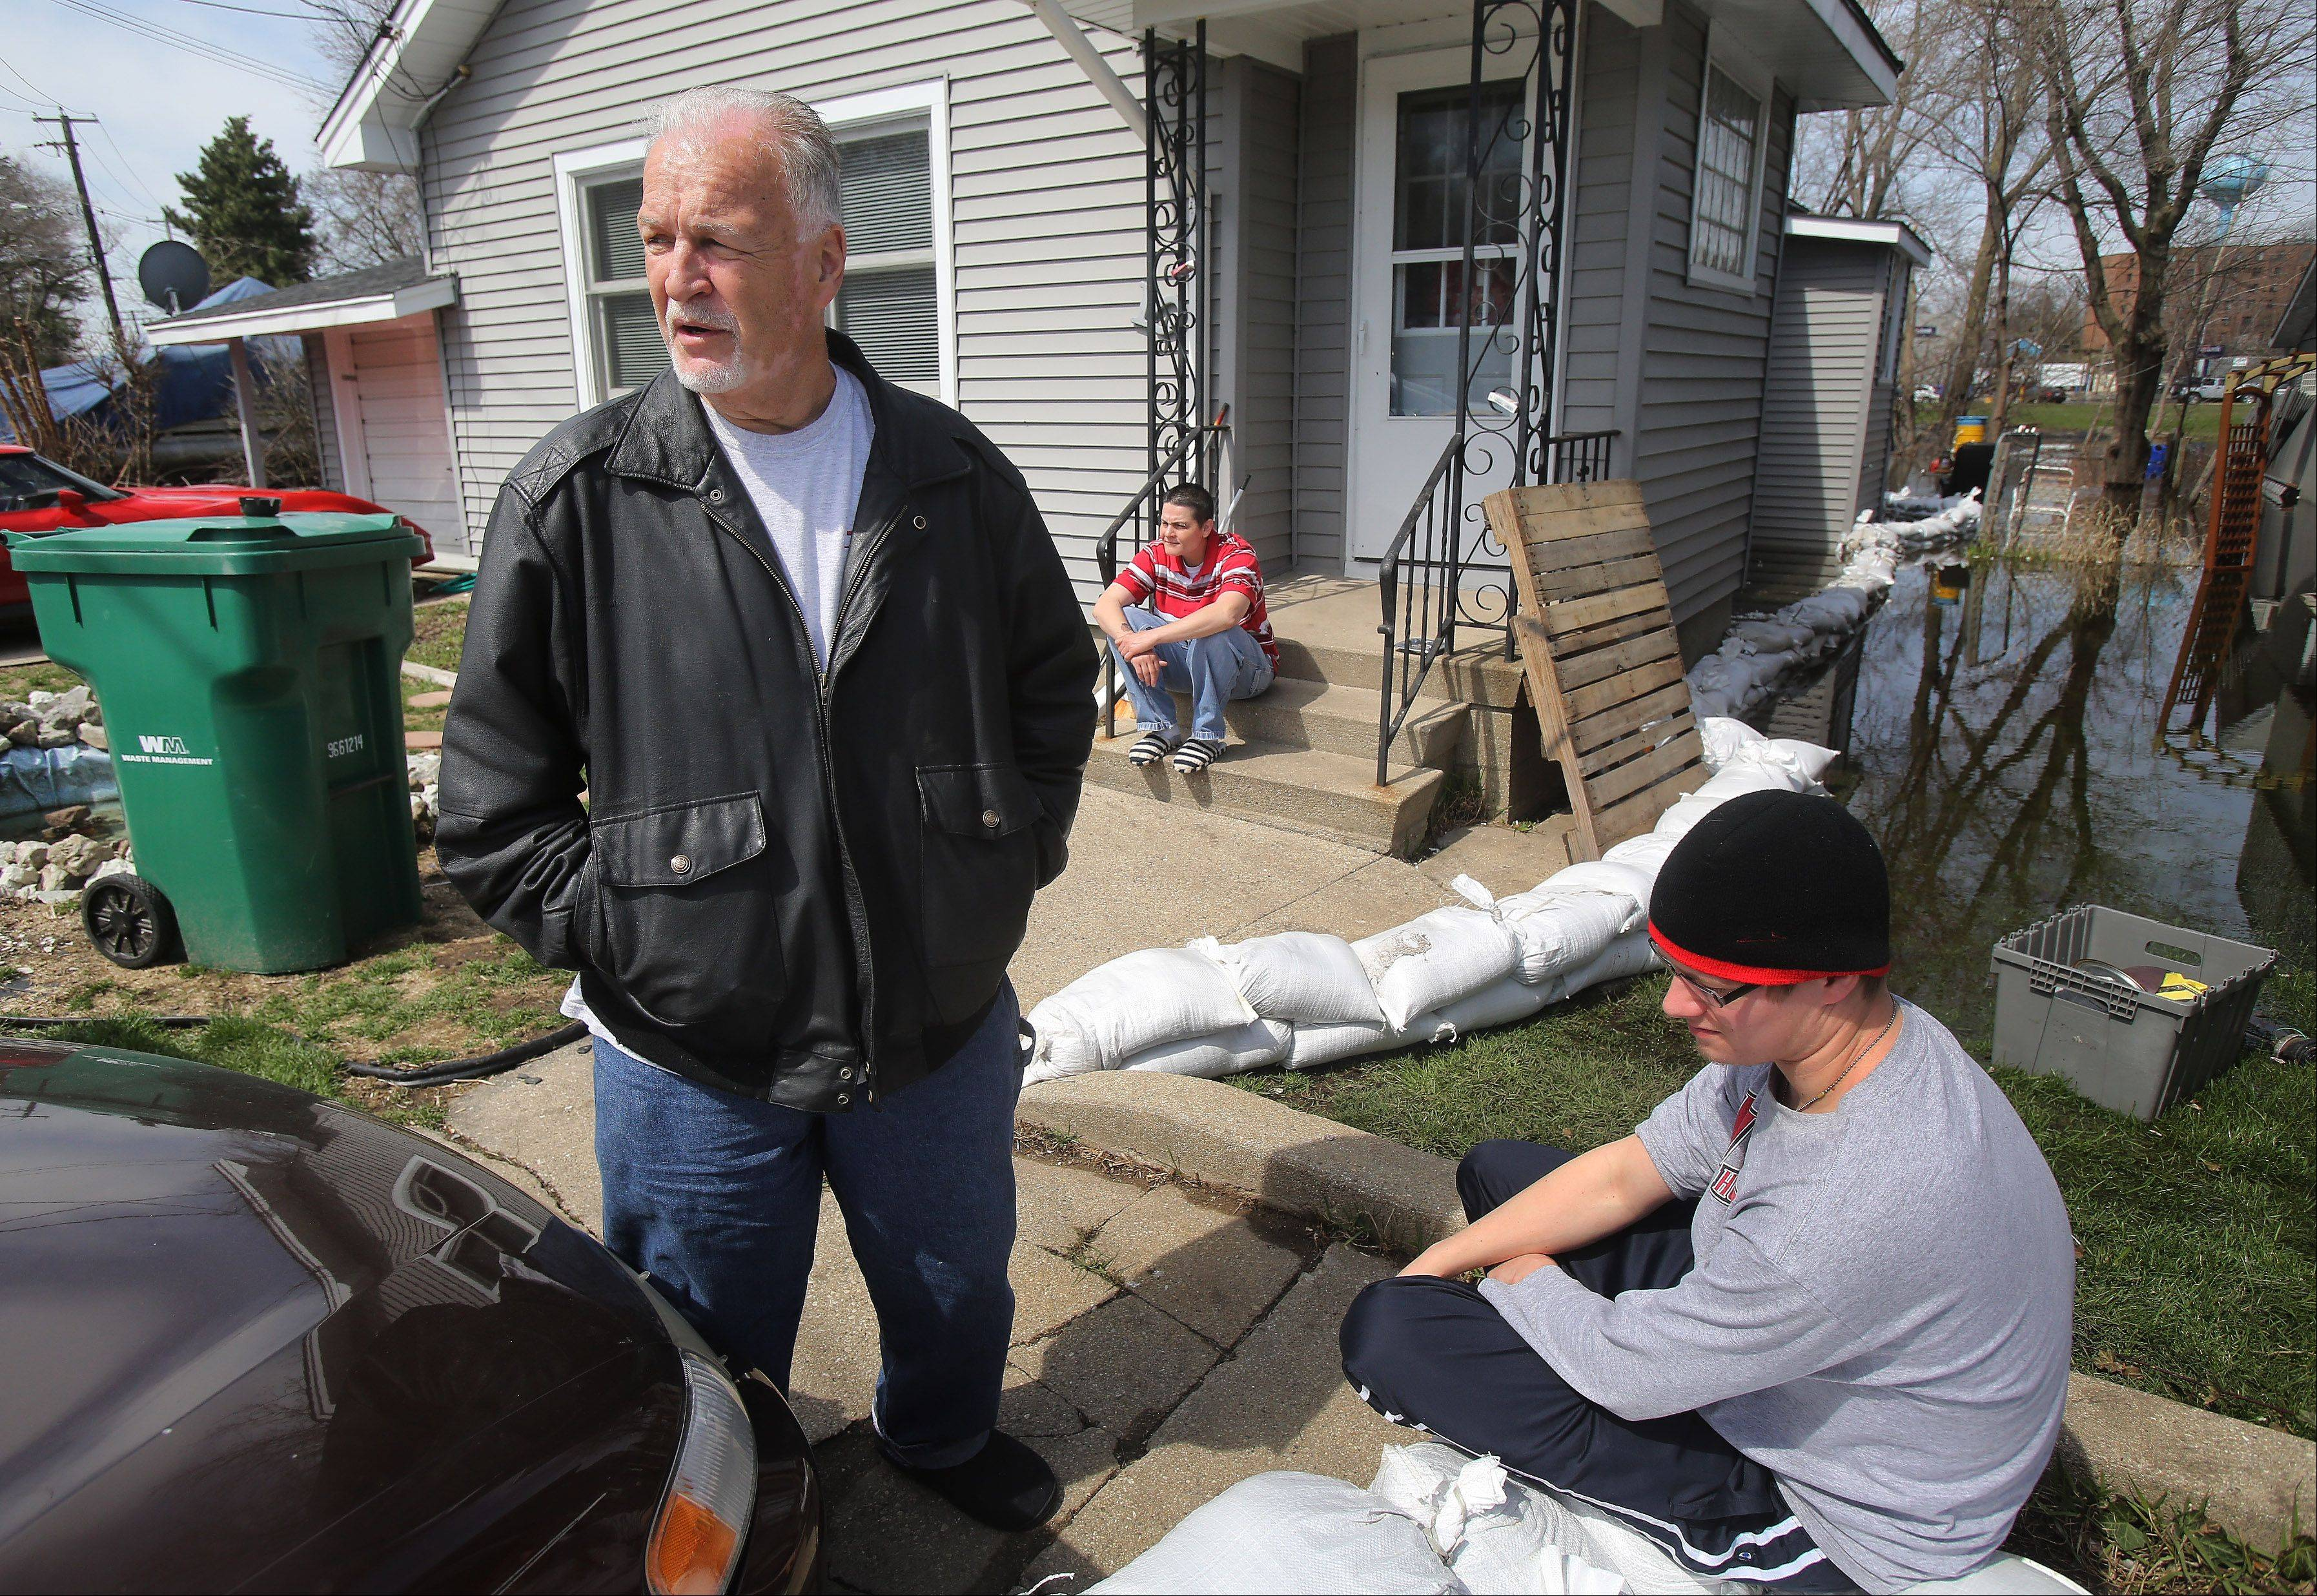 Fox Lake resident Ed Sikora discusses the devastating affects on his home from flooding around Fox Lake on Monday. Diane Hristov is sitting on the porch and neighbor Ryan Jaworek is right. The Chain O' Lakes waters have still not receded and area residents are concerned about the forecast of rain on Tuesday.